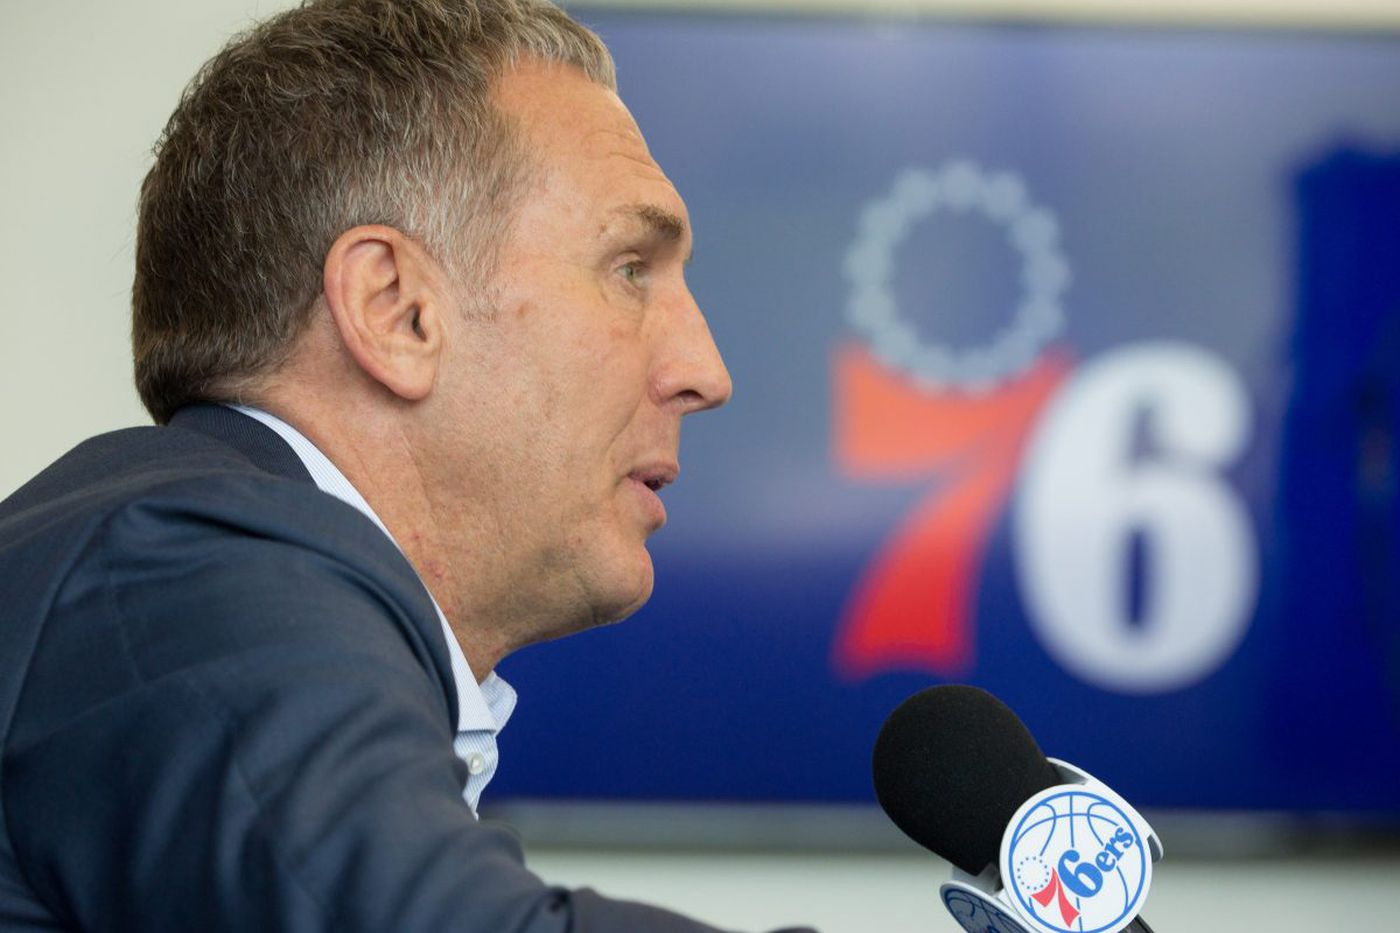 Report: Sixers GM Bryan Colangelo used fake Twitter accounts to argue with critics, smear former players and colleagues